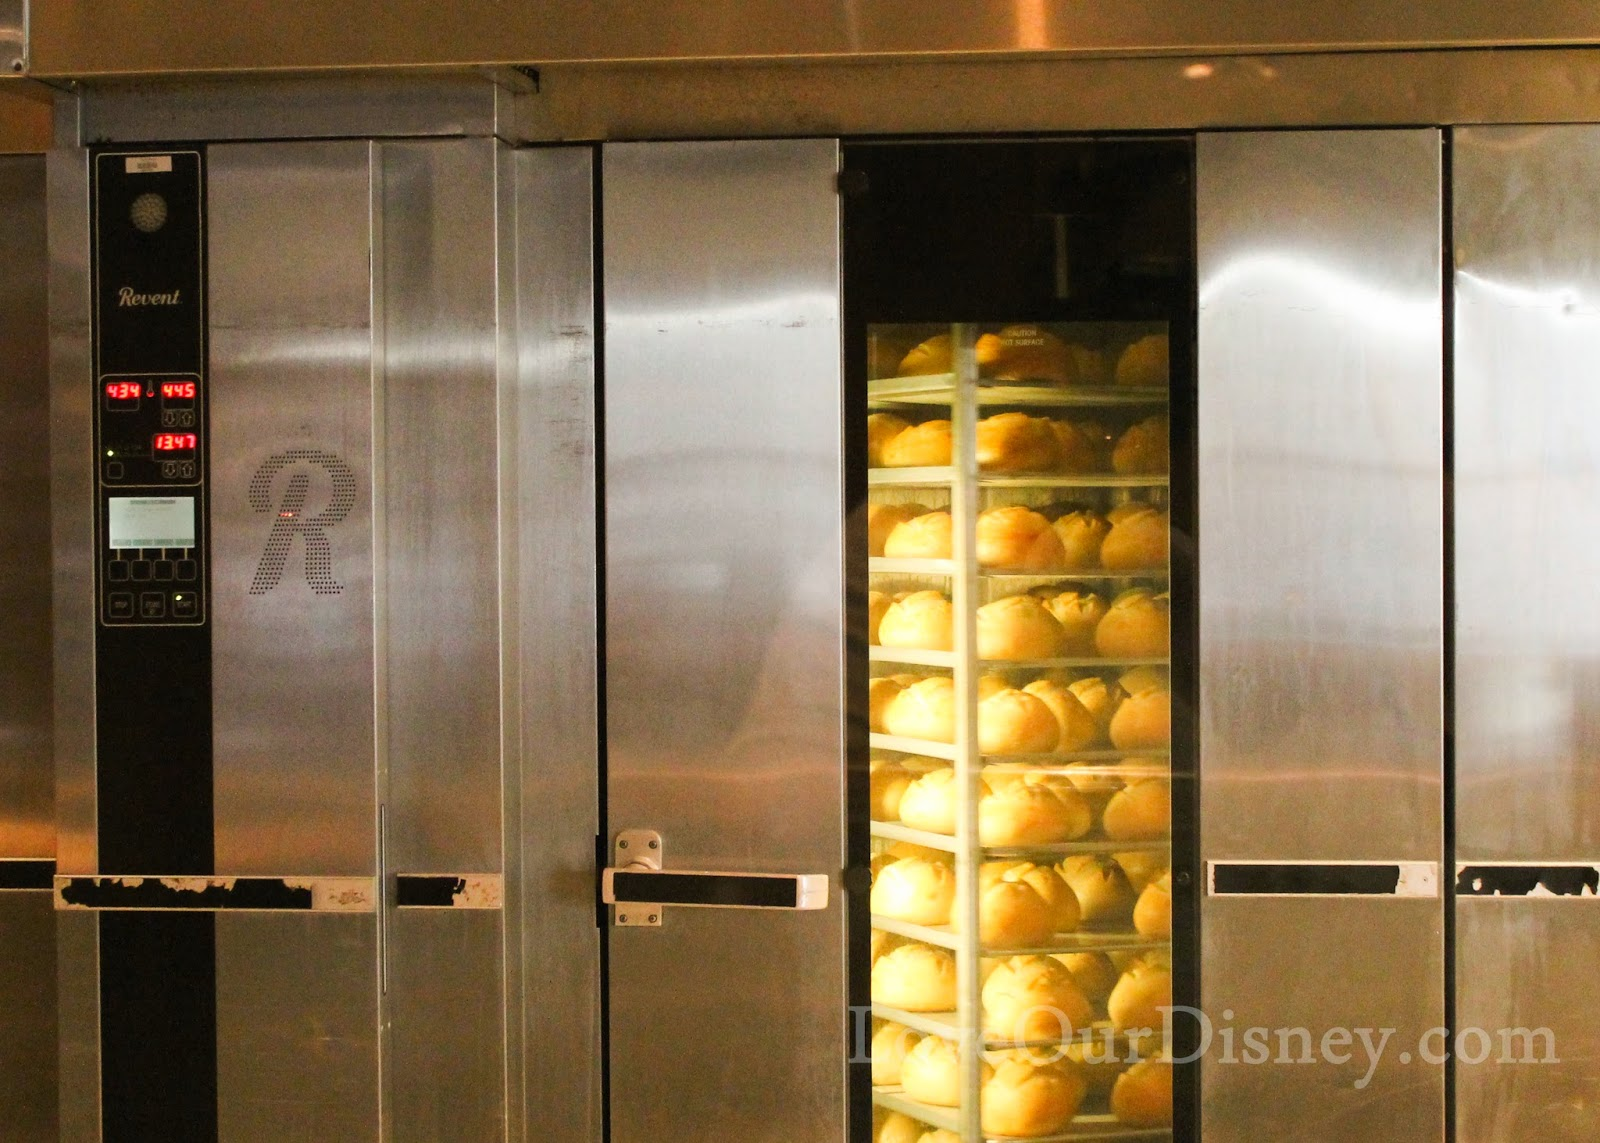 Warm bread fresh from the bakery? YES PLEASE! At Disney California Adventure you can take a bakery tour and see how they make bread for Disneyland. LoveOurDisney.com tells all about it.